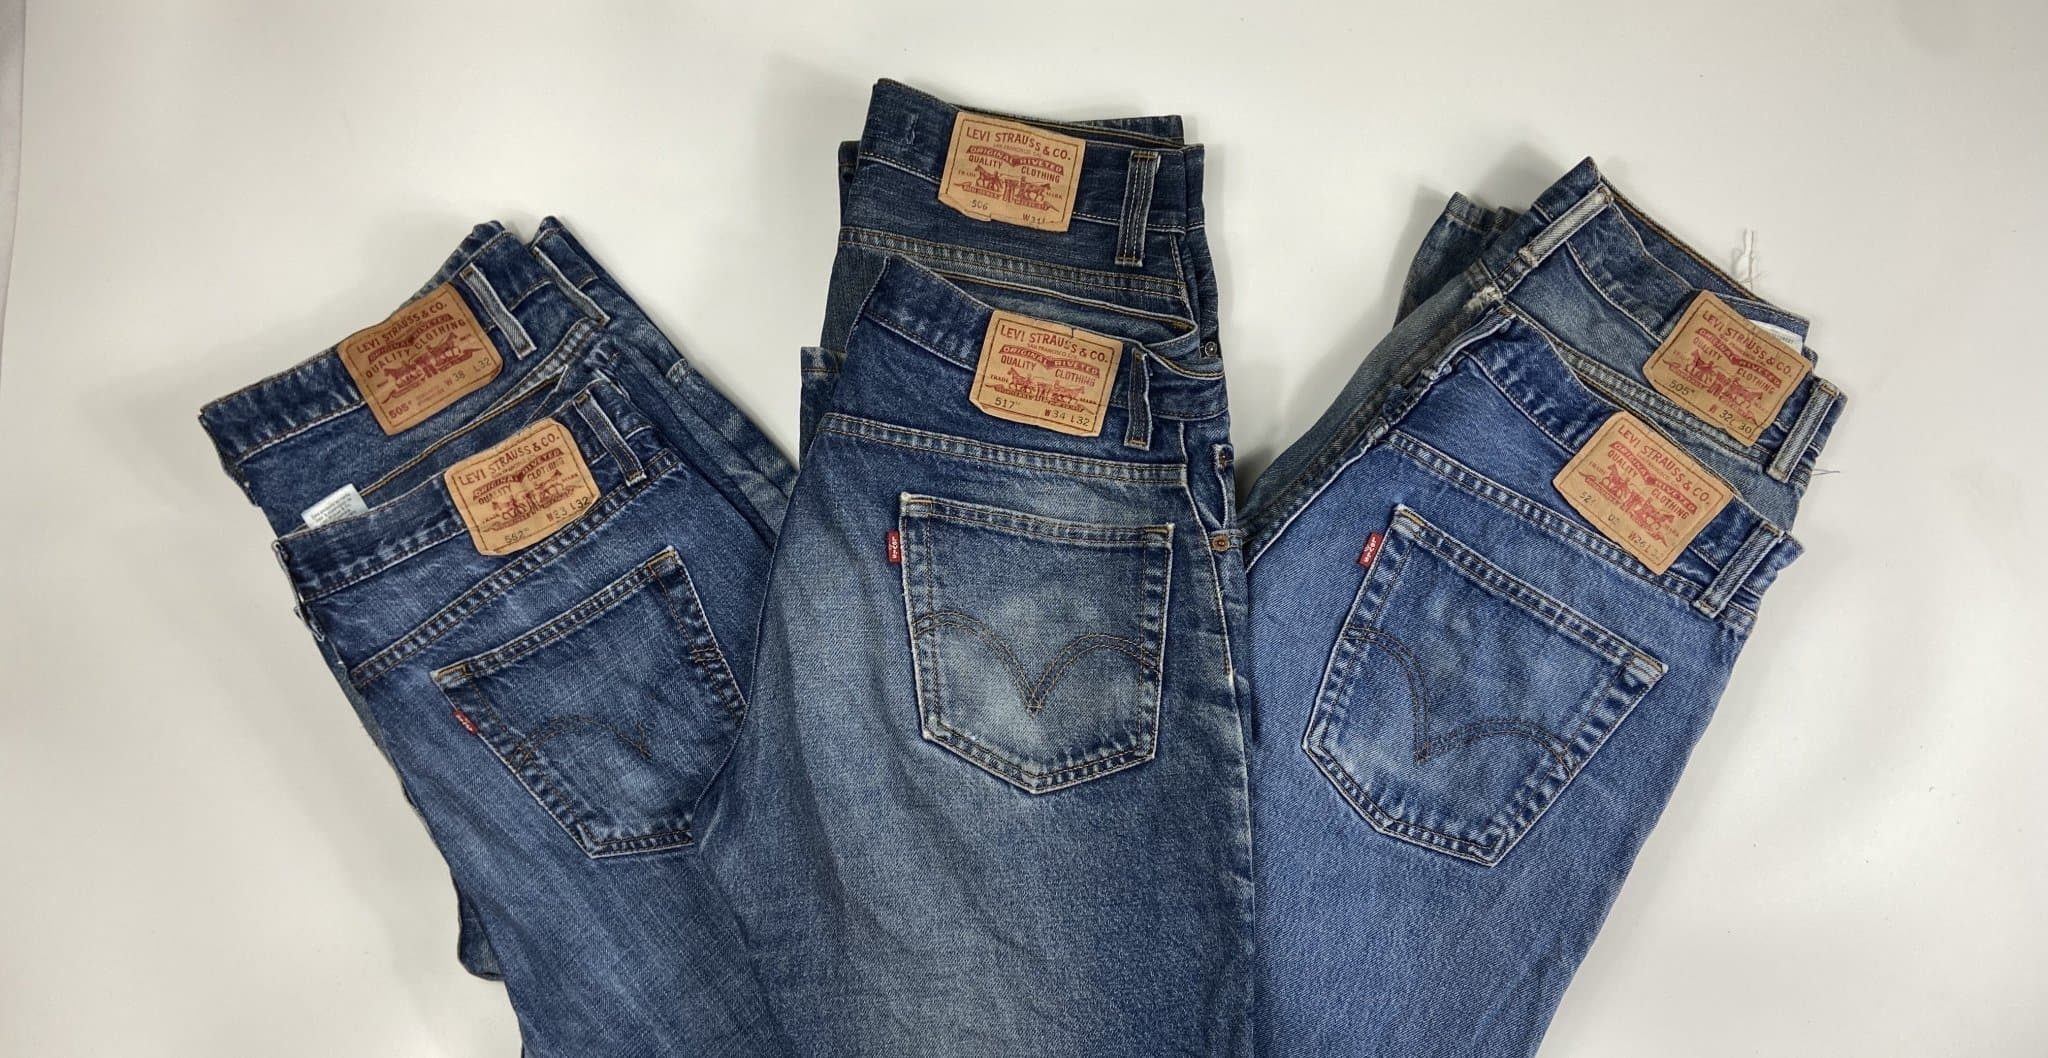 Vintage Levi's Classic Blue Zip Fly Jeans W38 L32 (BE3) - Discounted Deals UK